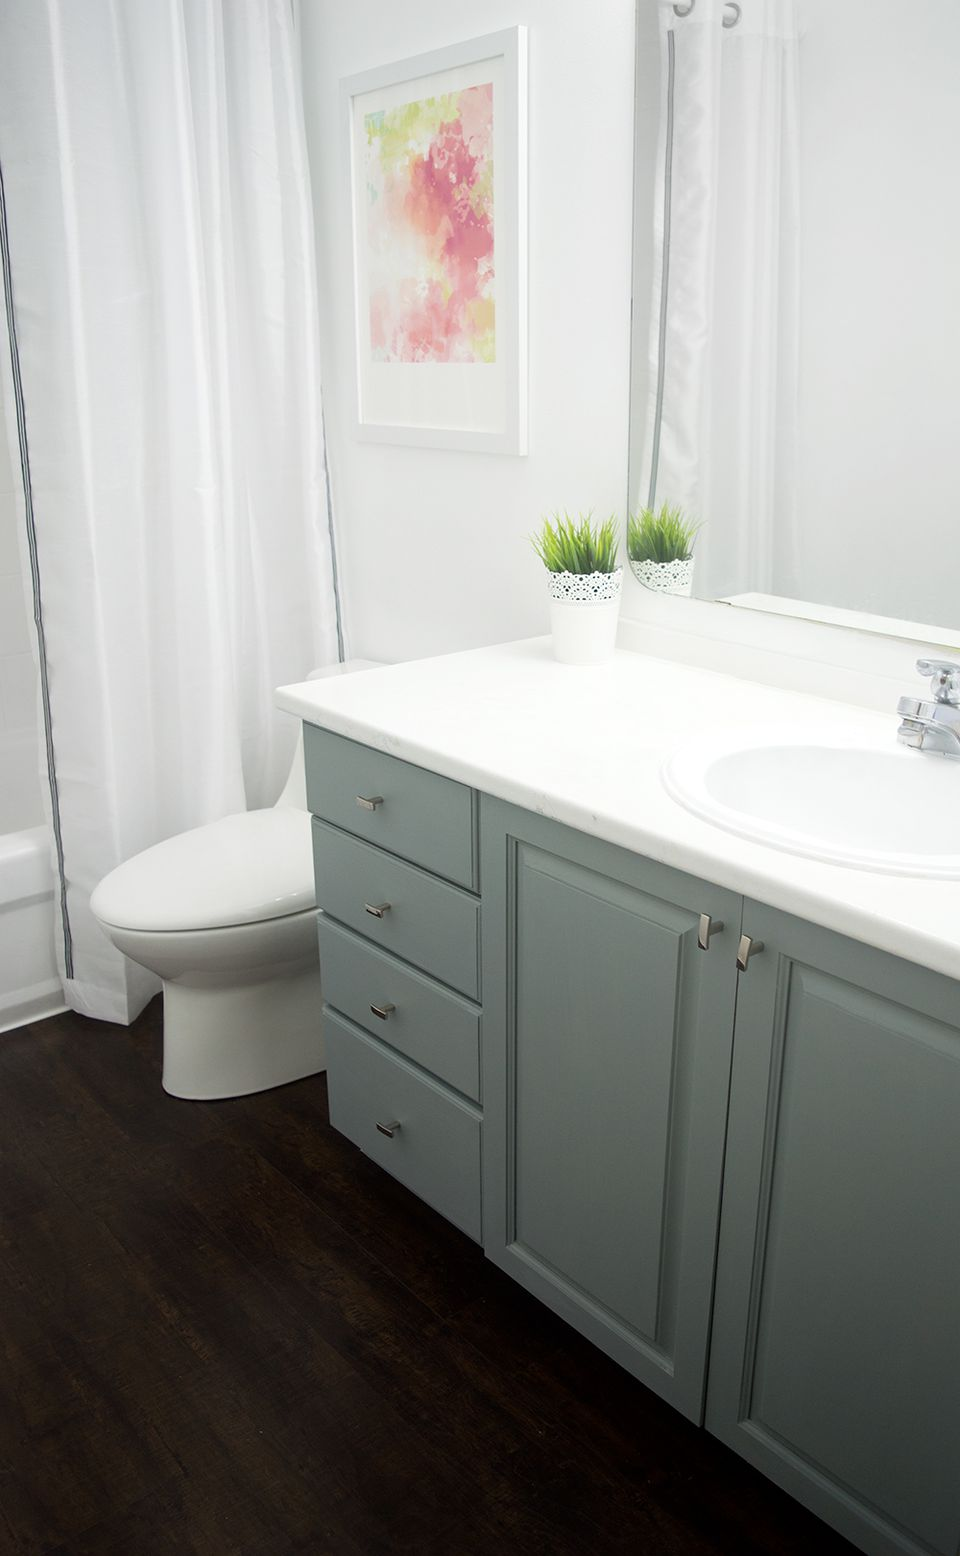 diy painting bathroom cabinets 13 easy diy bathroom updates to try 18159